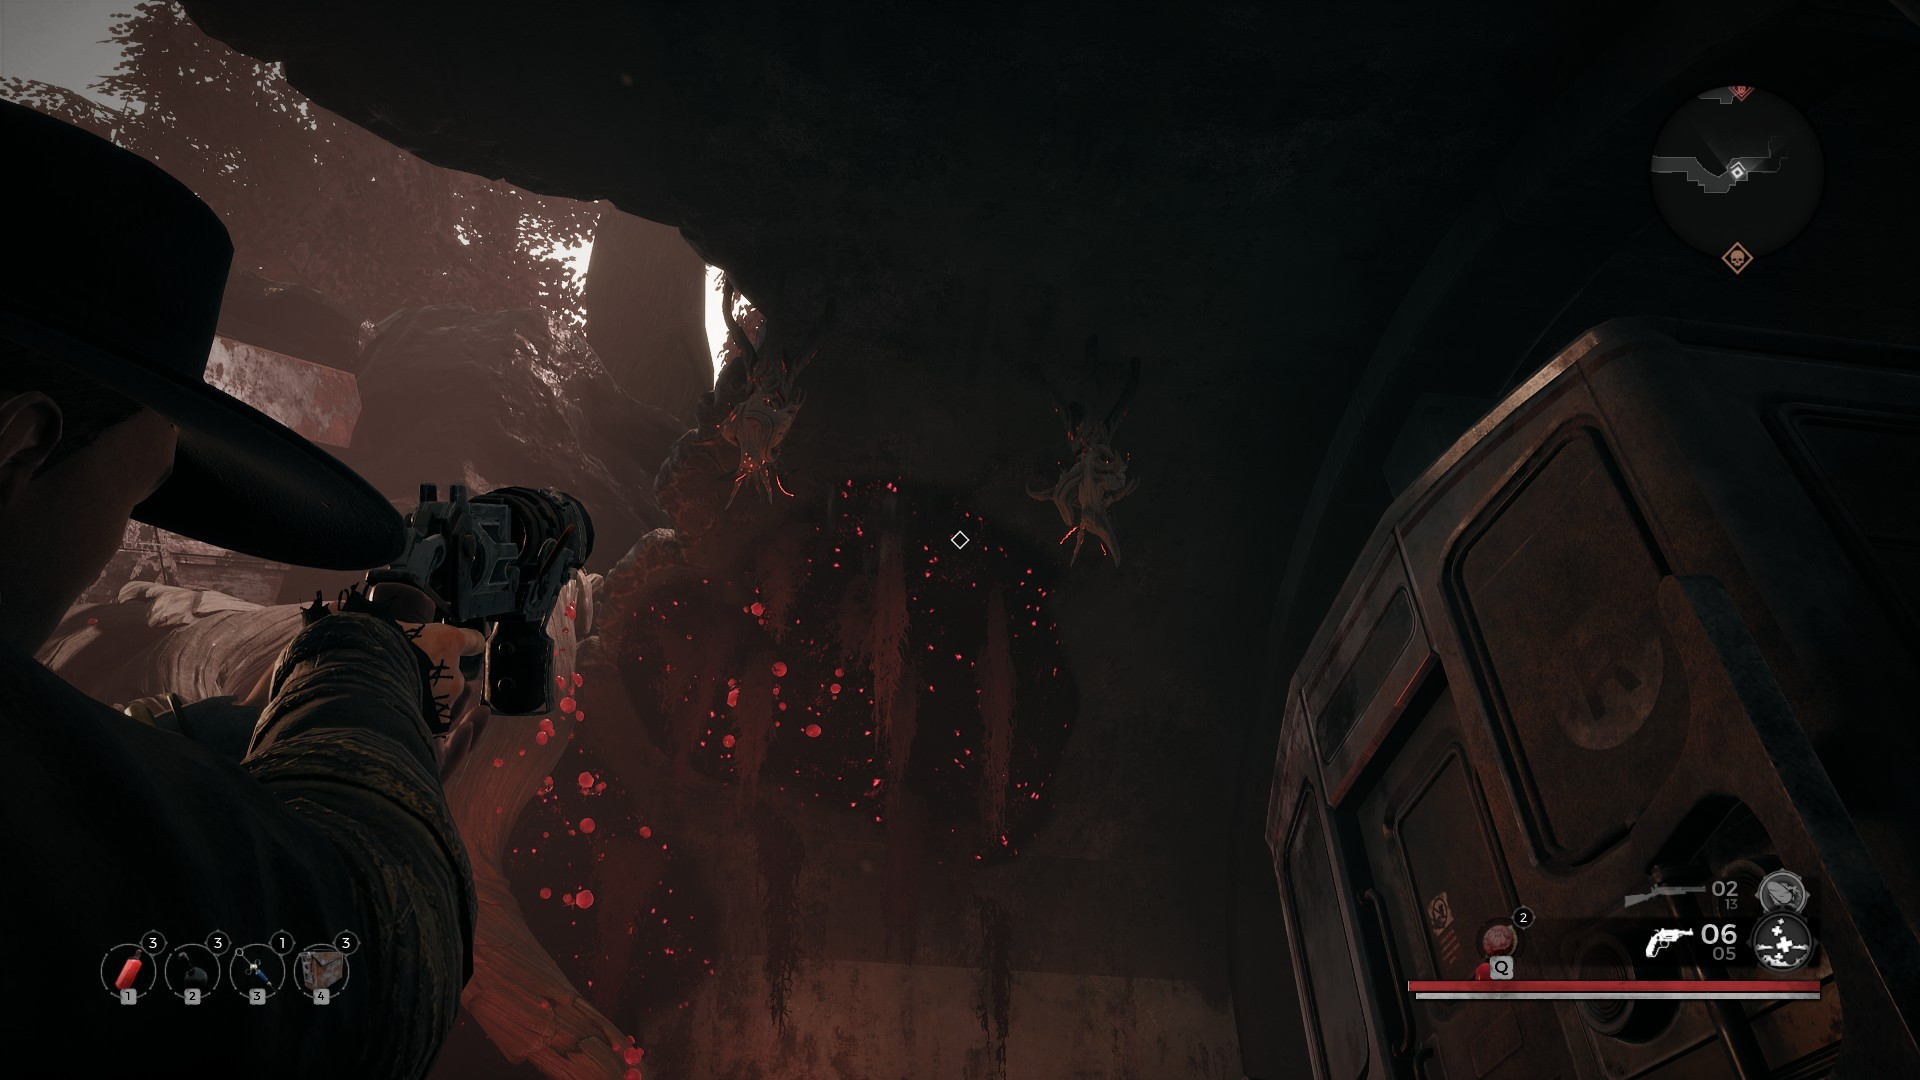 Remnant enemies on the ceiling